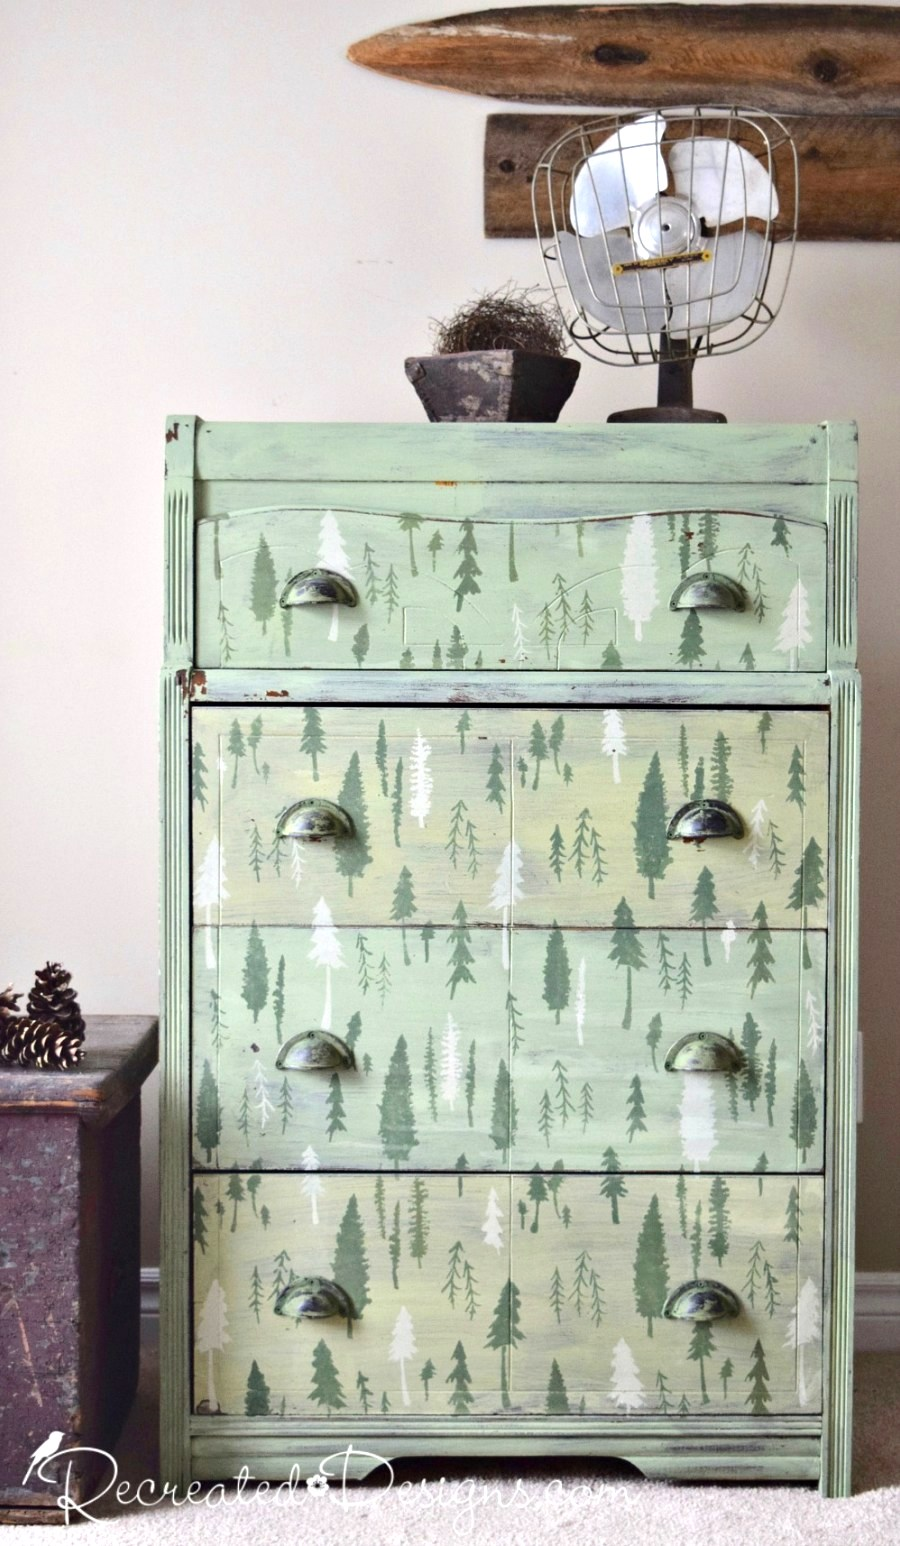 Milk painted forest on a dresser, by Recreated Designs, featured on Funky Junk Interiors